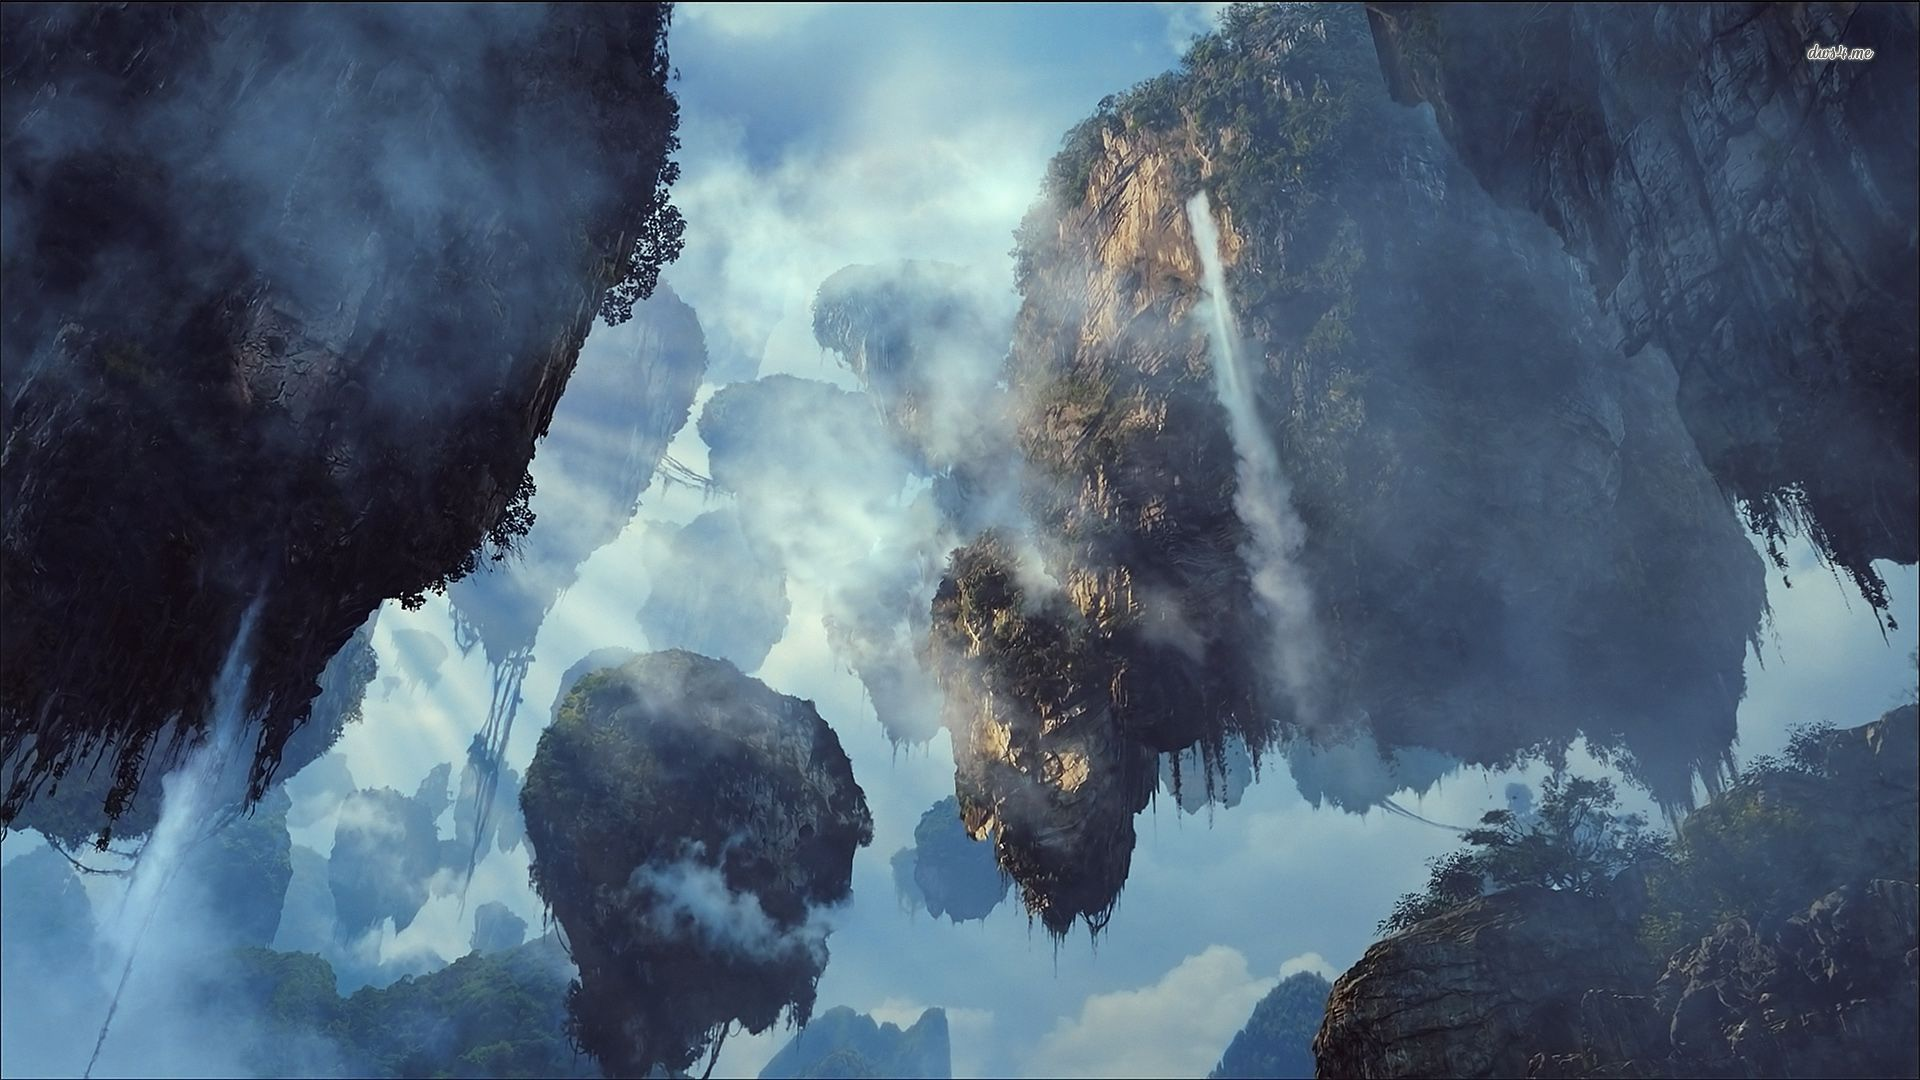 50 avatar movie wallpaper Pictures